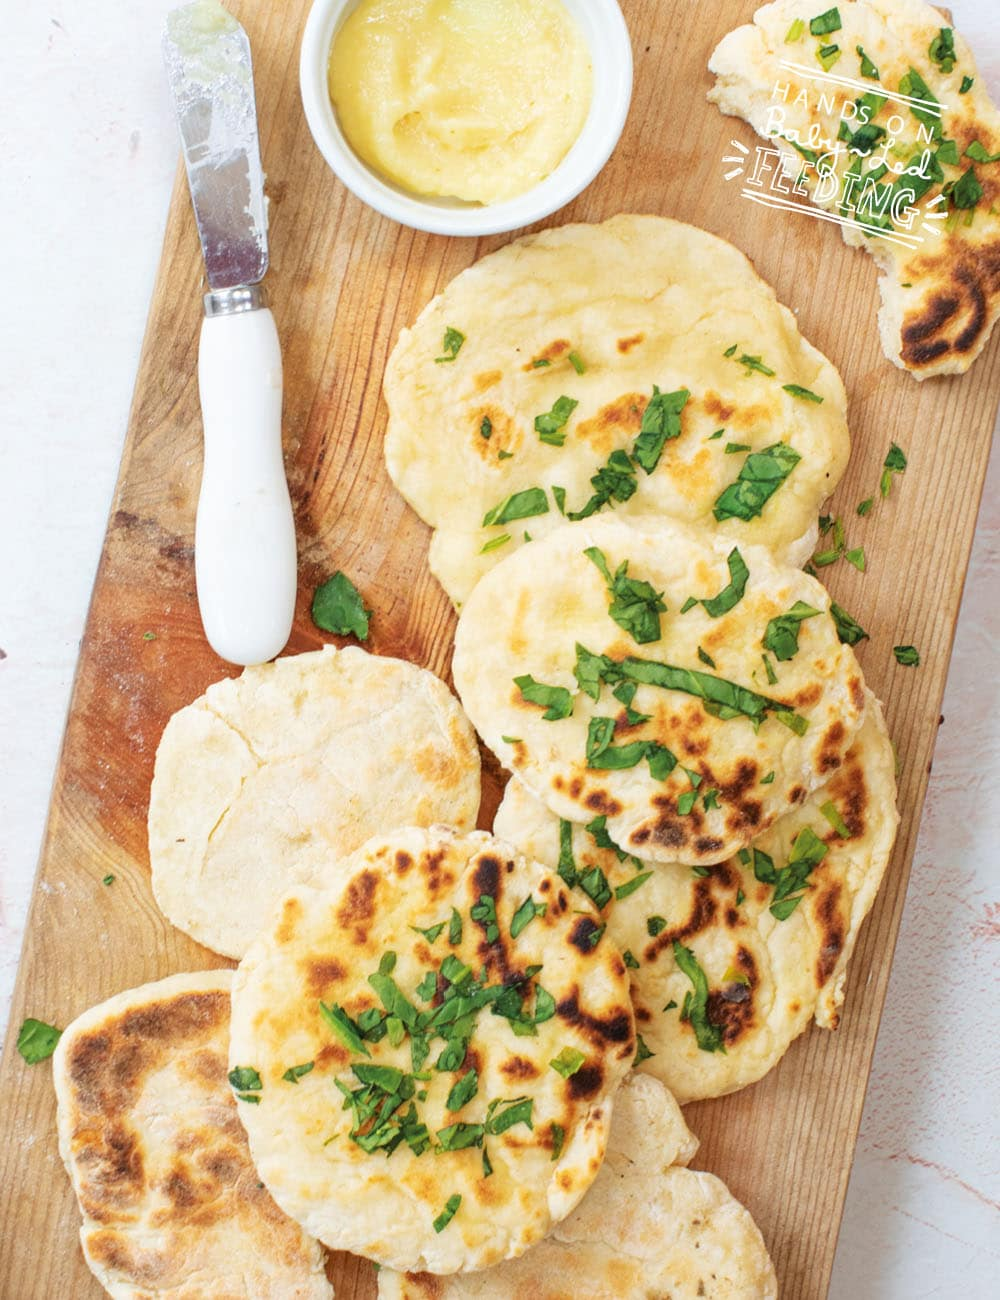 Baby Led Feeding 2 Ingredient Naan Breads Recipe Images2